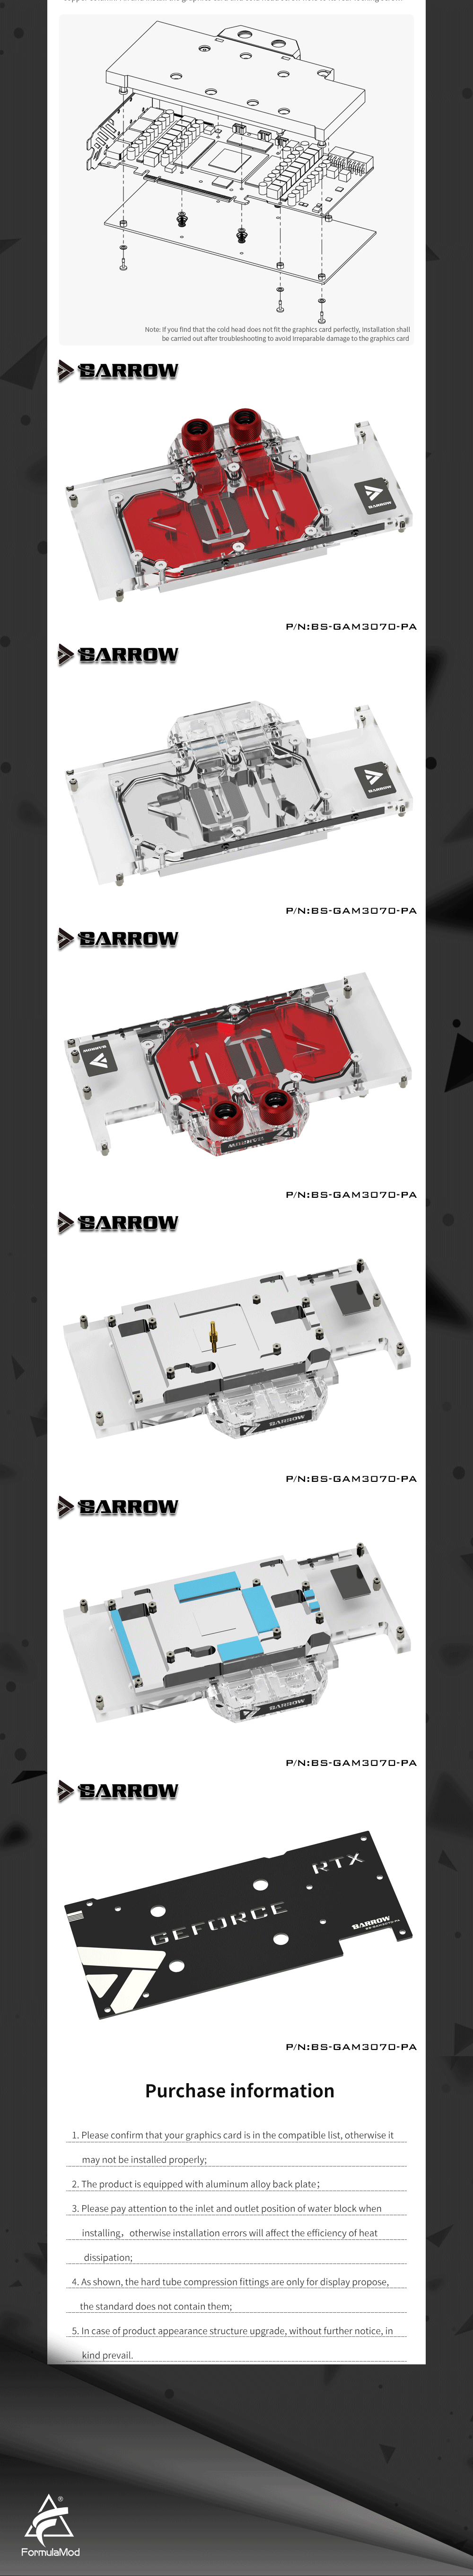 Barrow 3070 GPU Water Block for GALAX Geforce RTX 3070 MATELTOP, Full Cover ARGB GPU Cooler, BS-GAM3070-PA